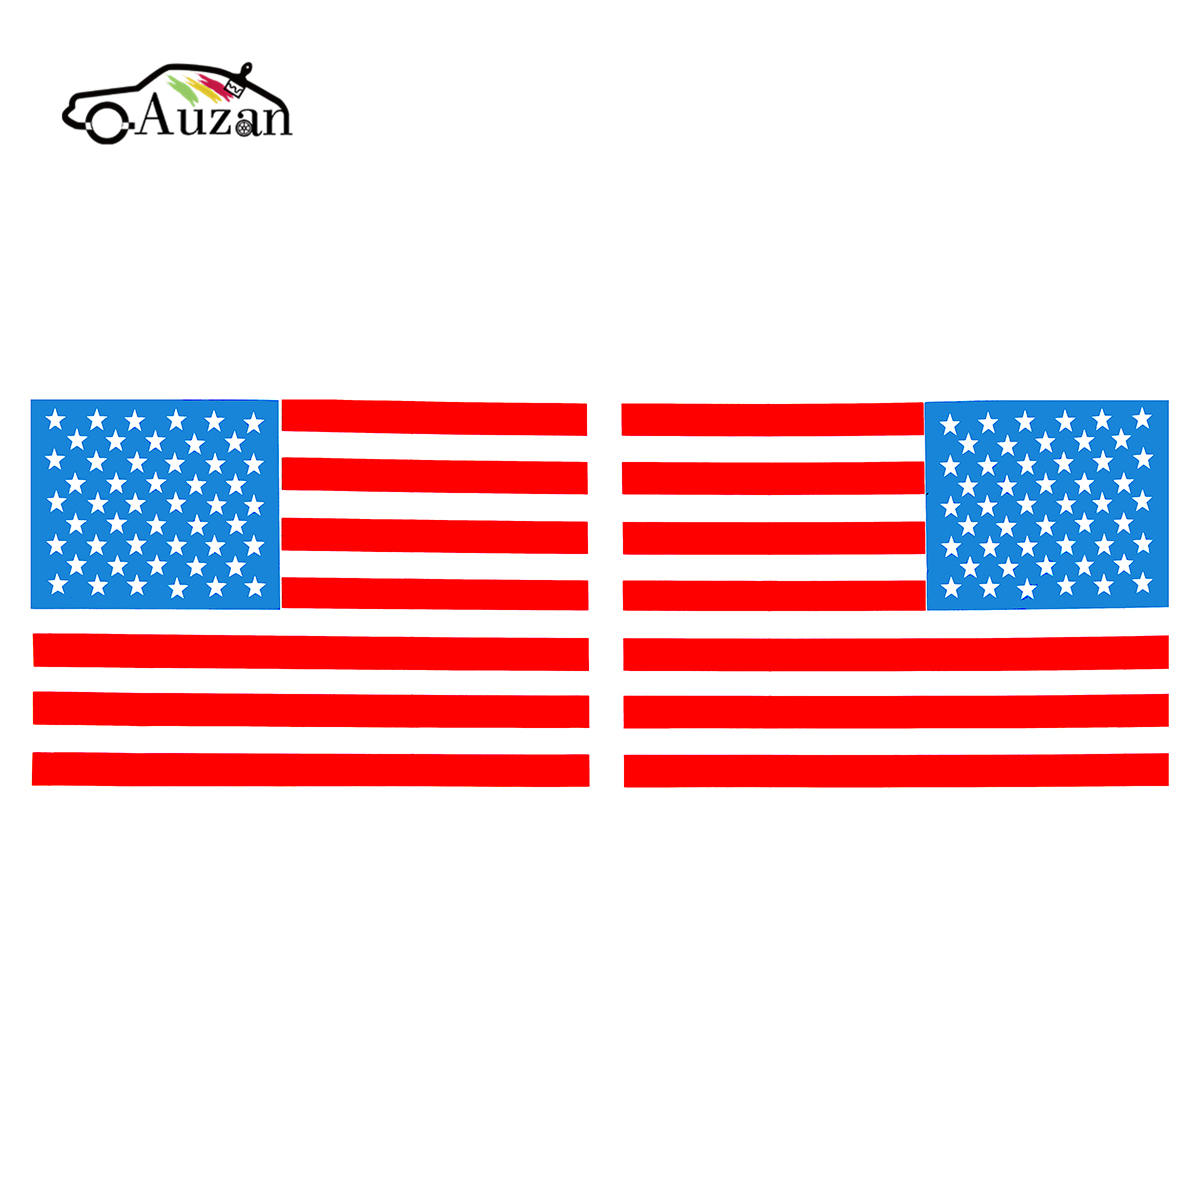 Aliexpresscom  Buy  Pair  Inch American Flag USA Mirrored - Vinyl decals for boats